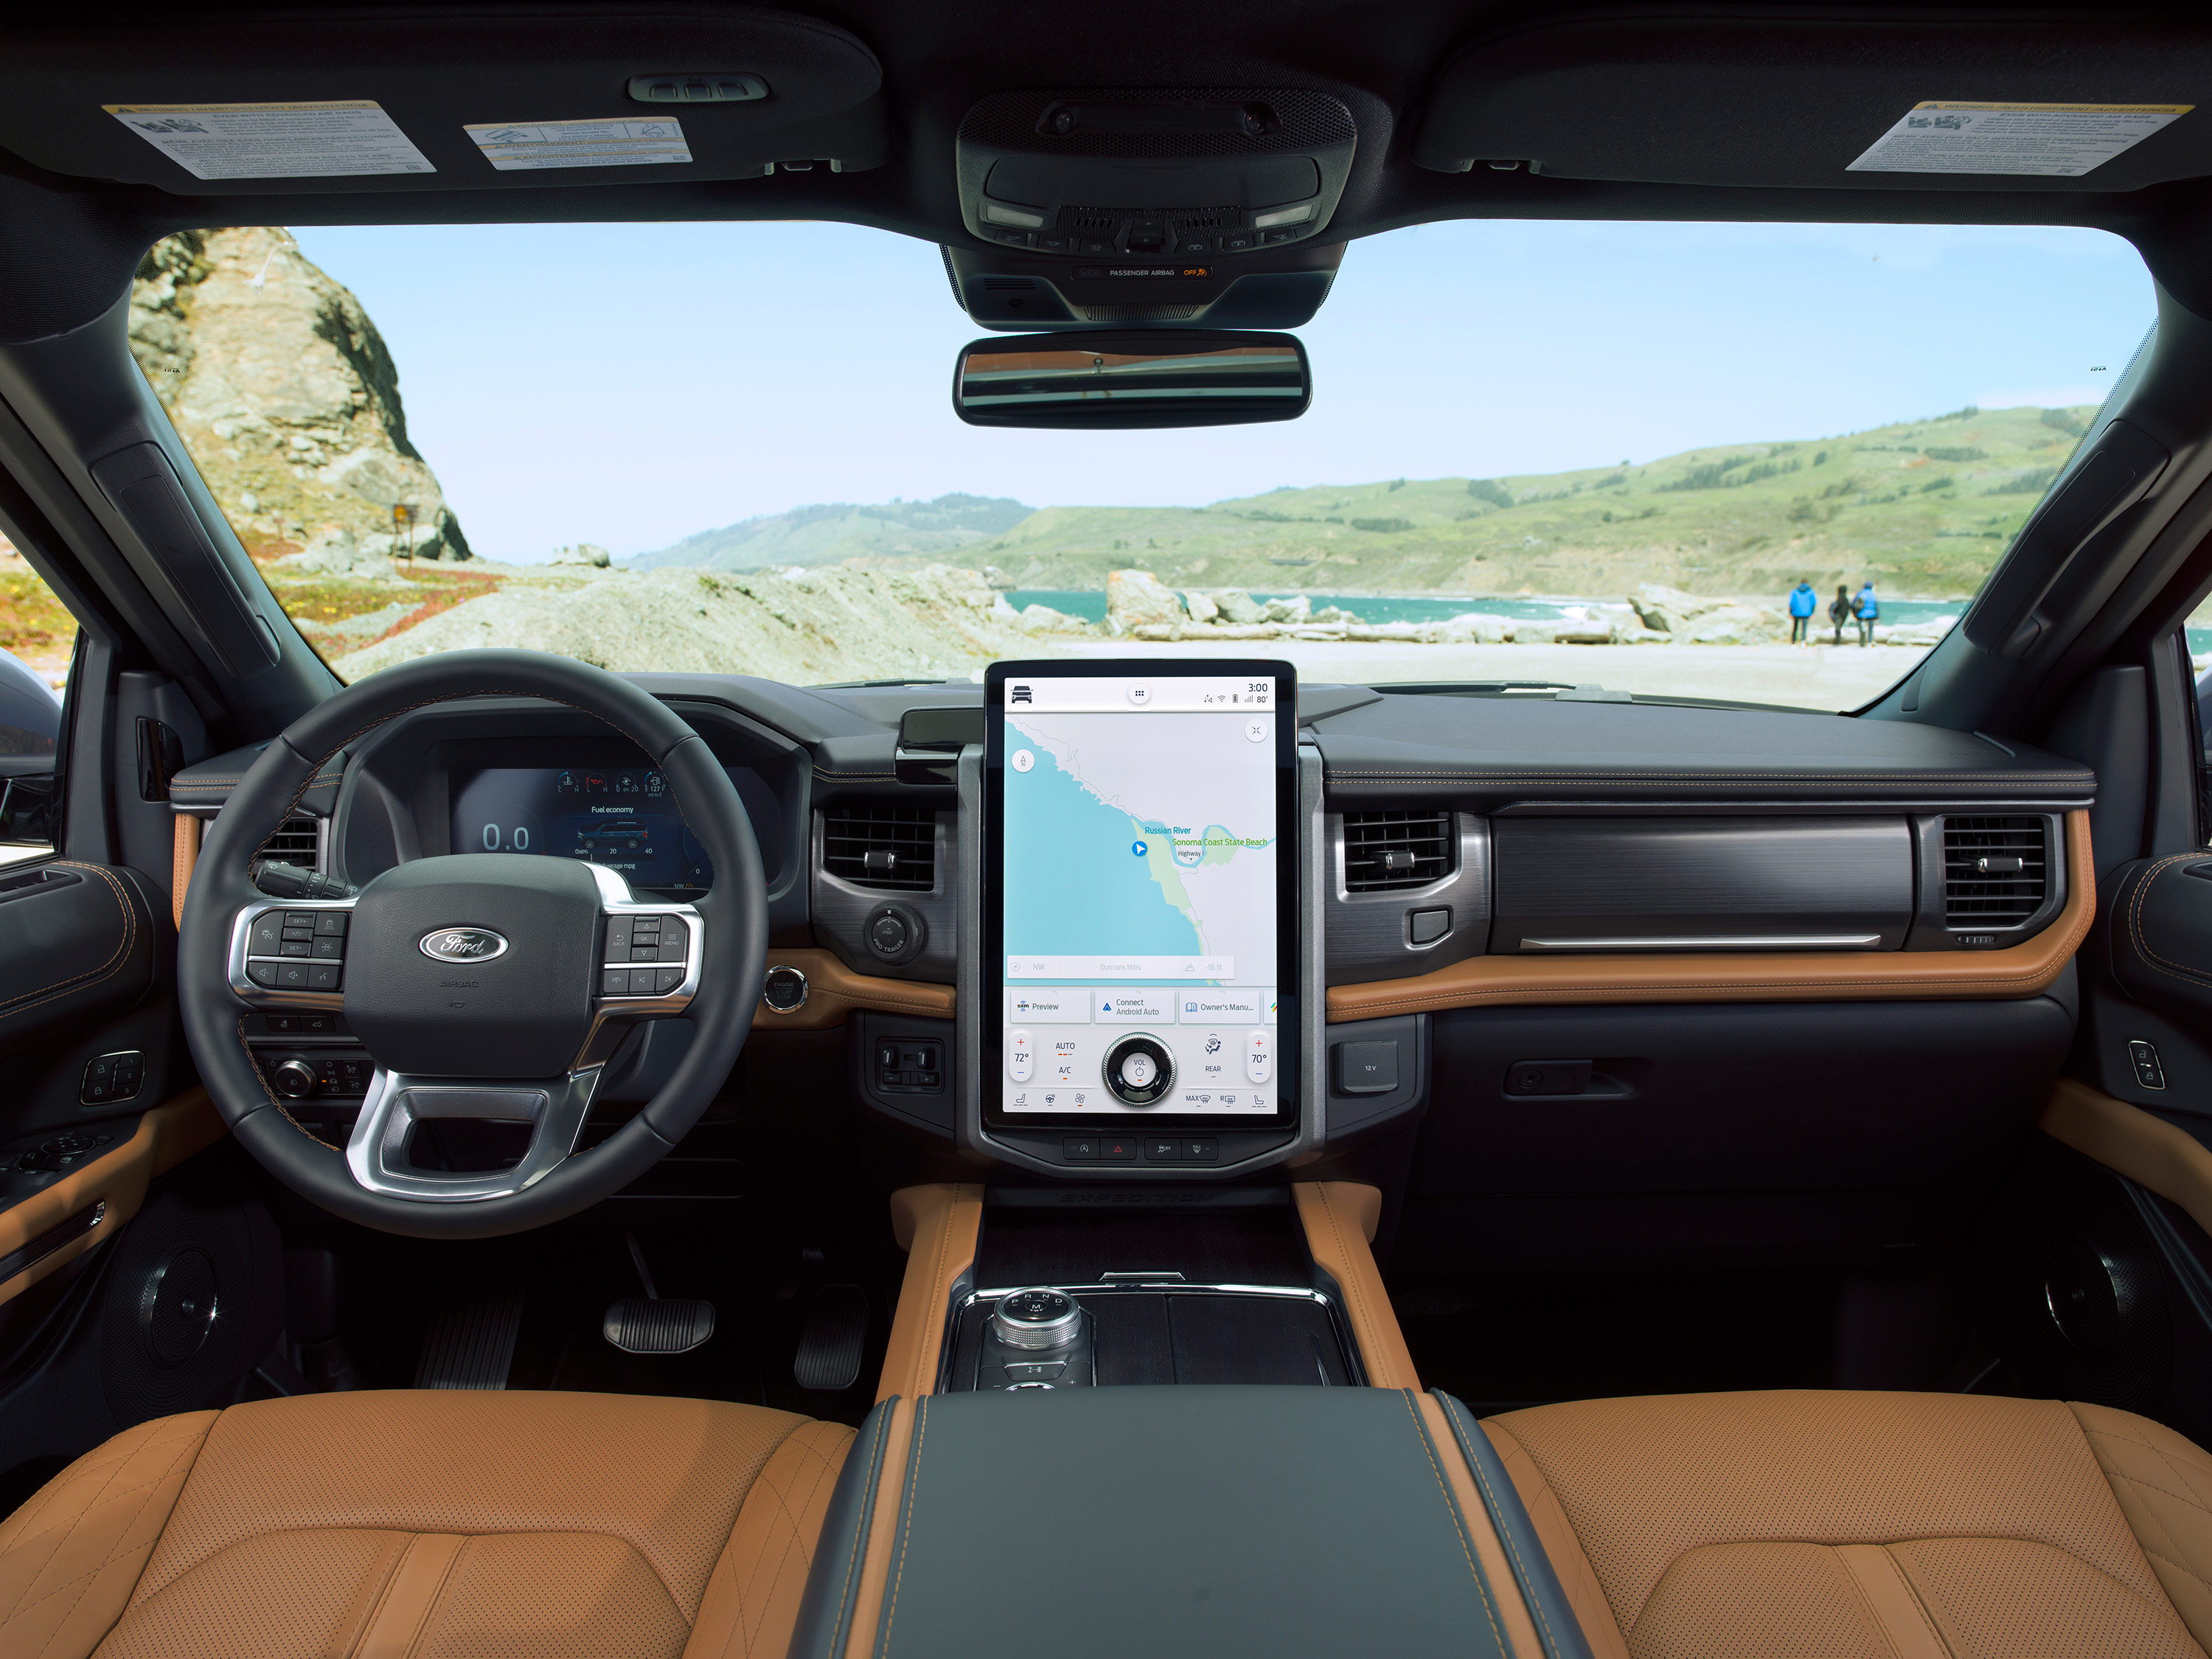 2022 Ford Expedition - interior